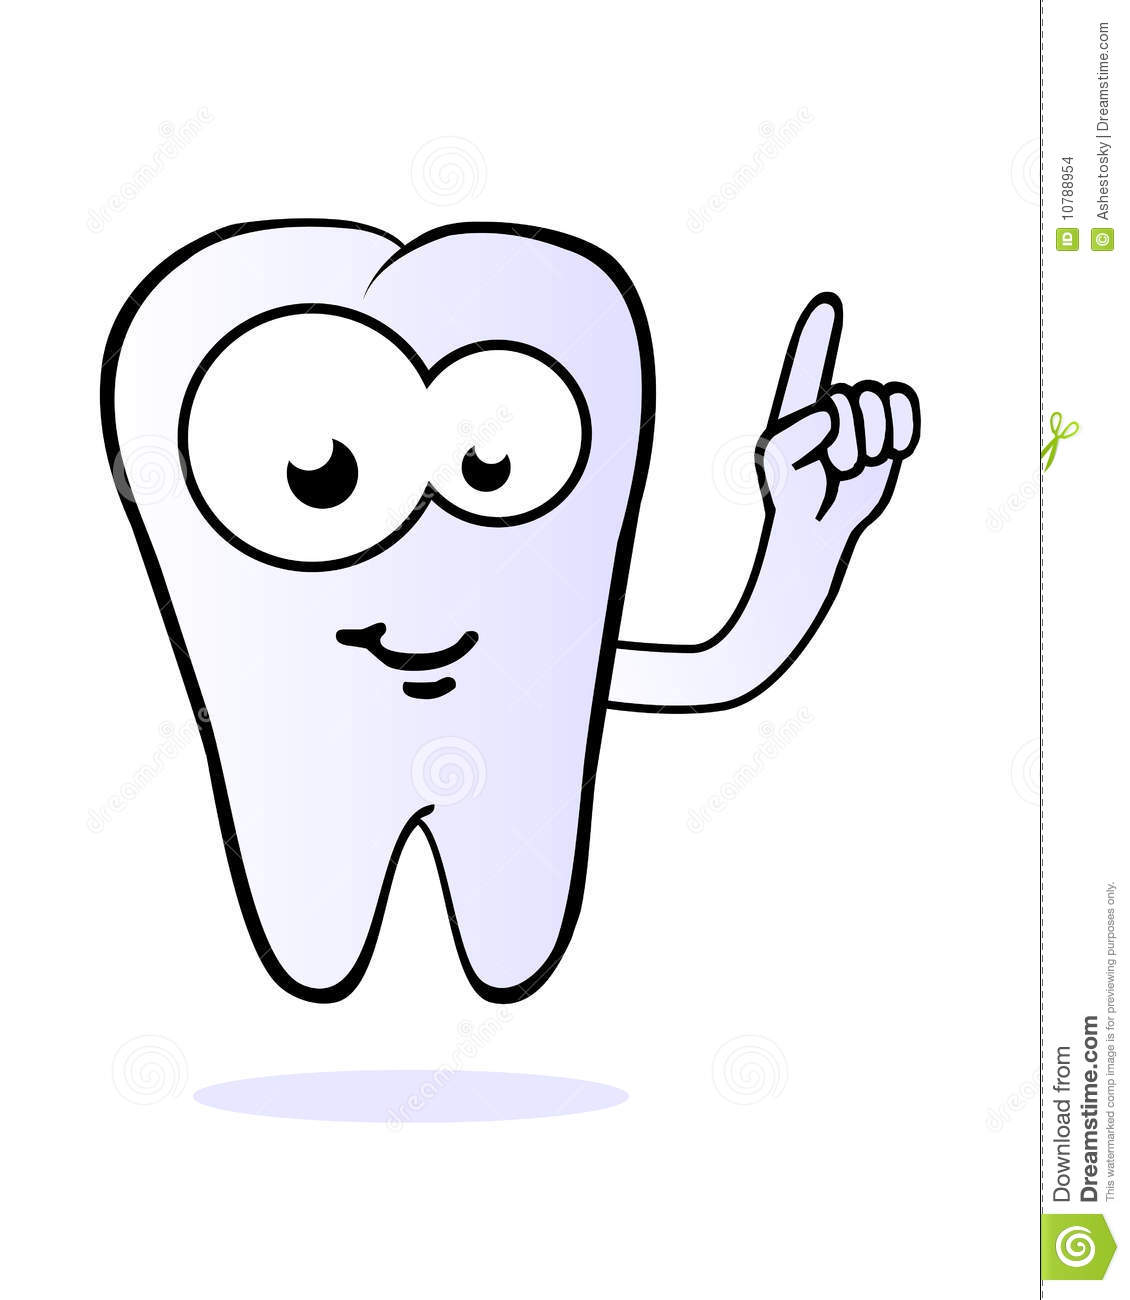 ... eyes and pointing finger in the air, related to dental care for kids